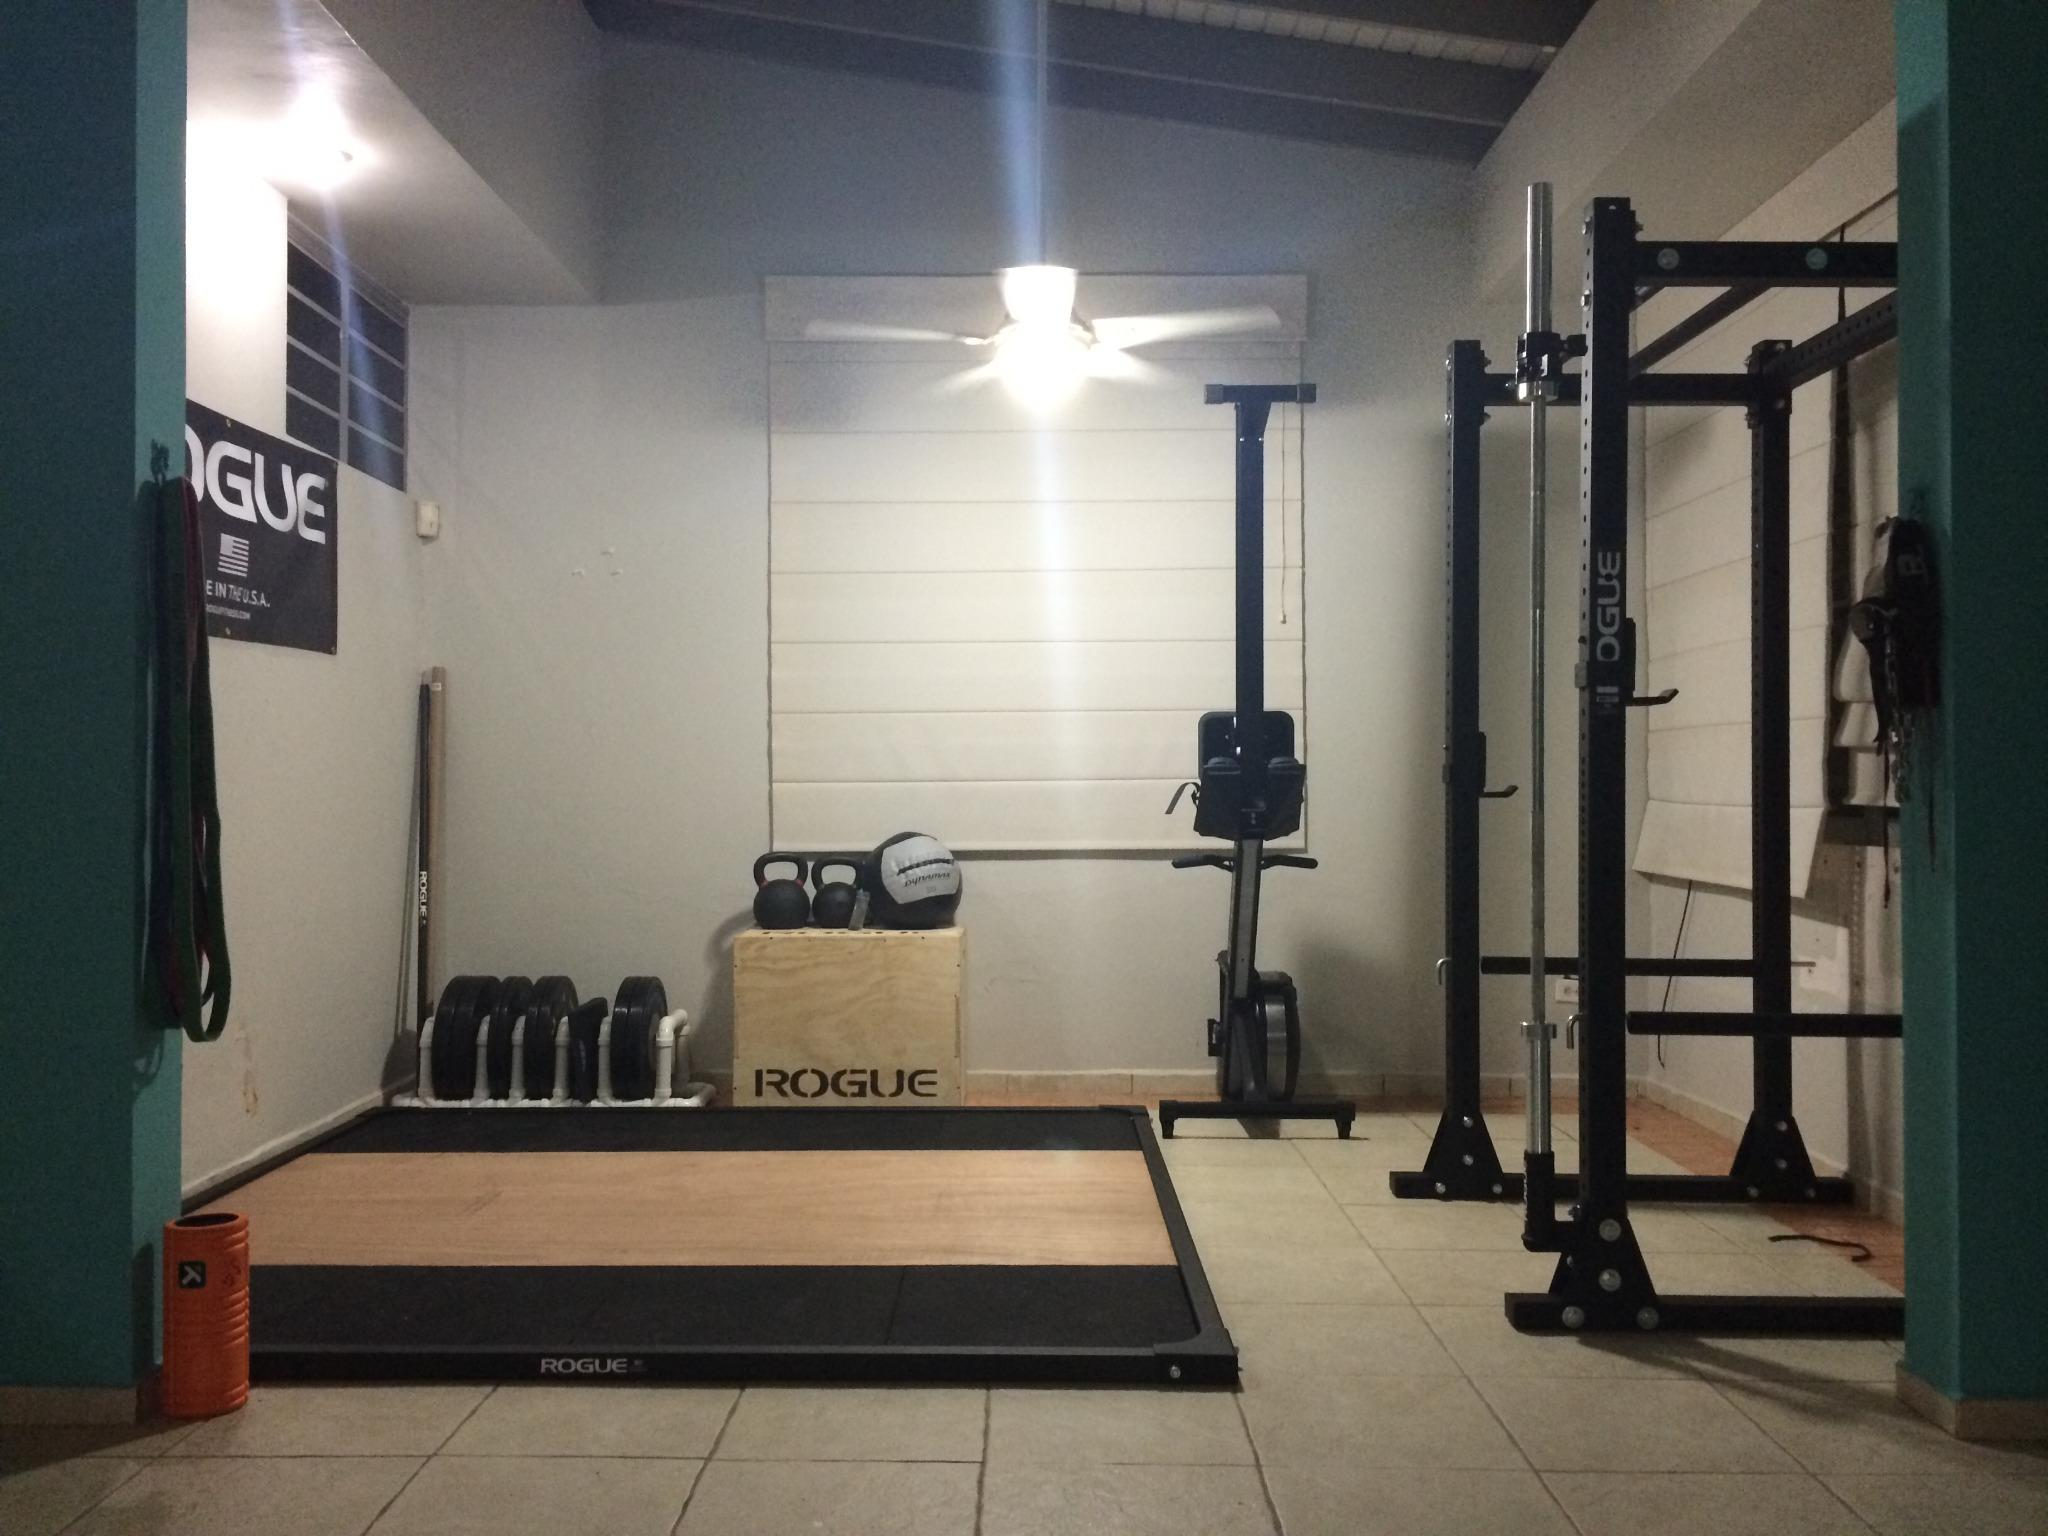 Rogue fitness on twitter quot home gym setup up courtesy of